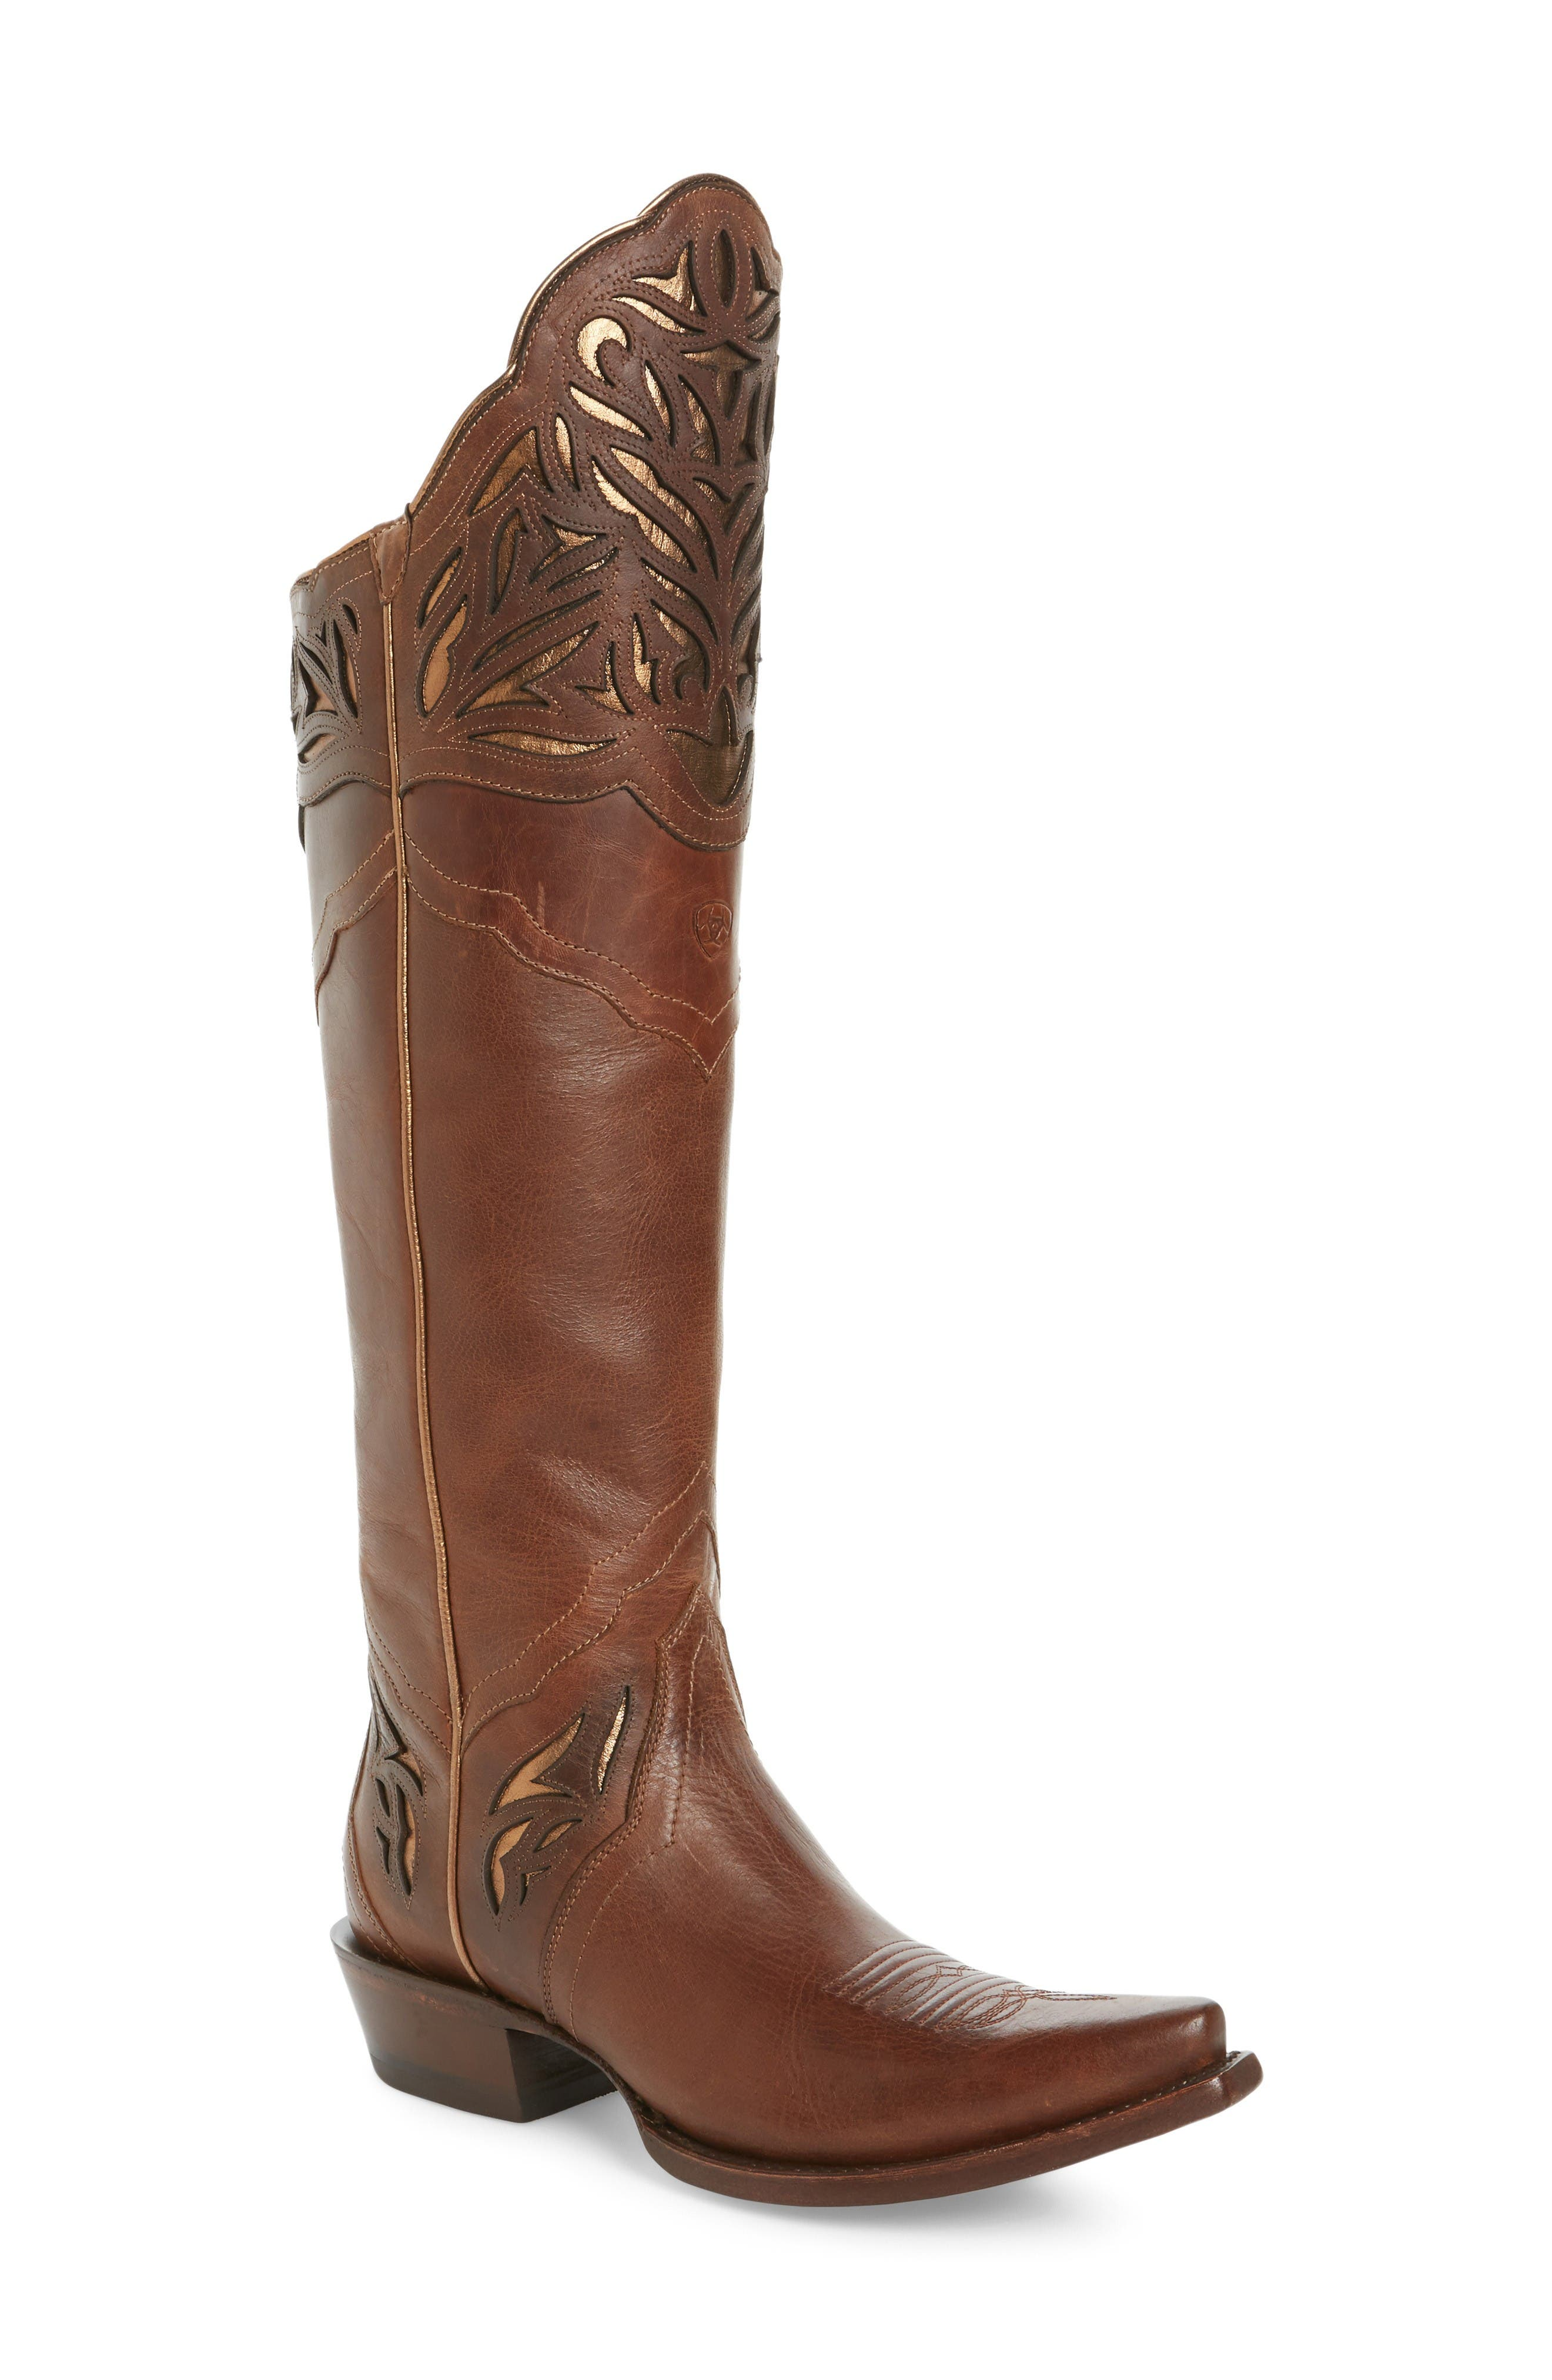 Alternate Image 1 Selected - Ariat Chaparral Over the Knee Western Boot (Women)